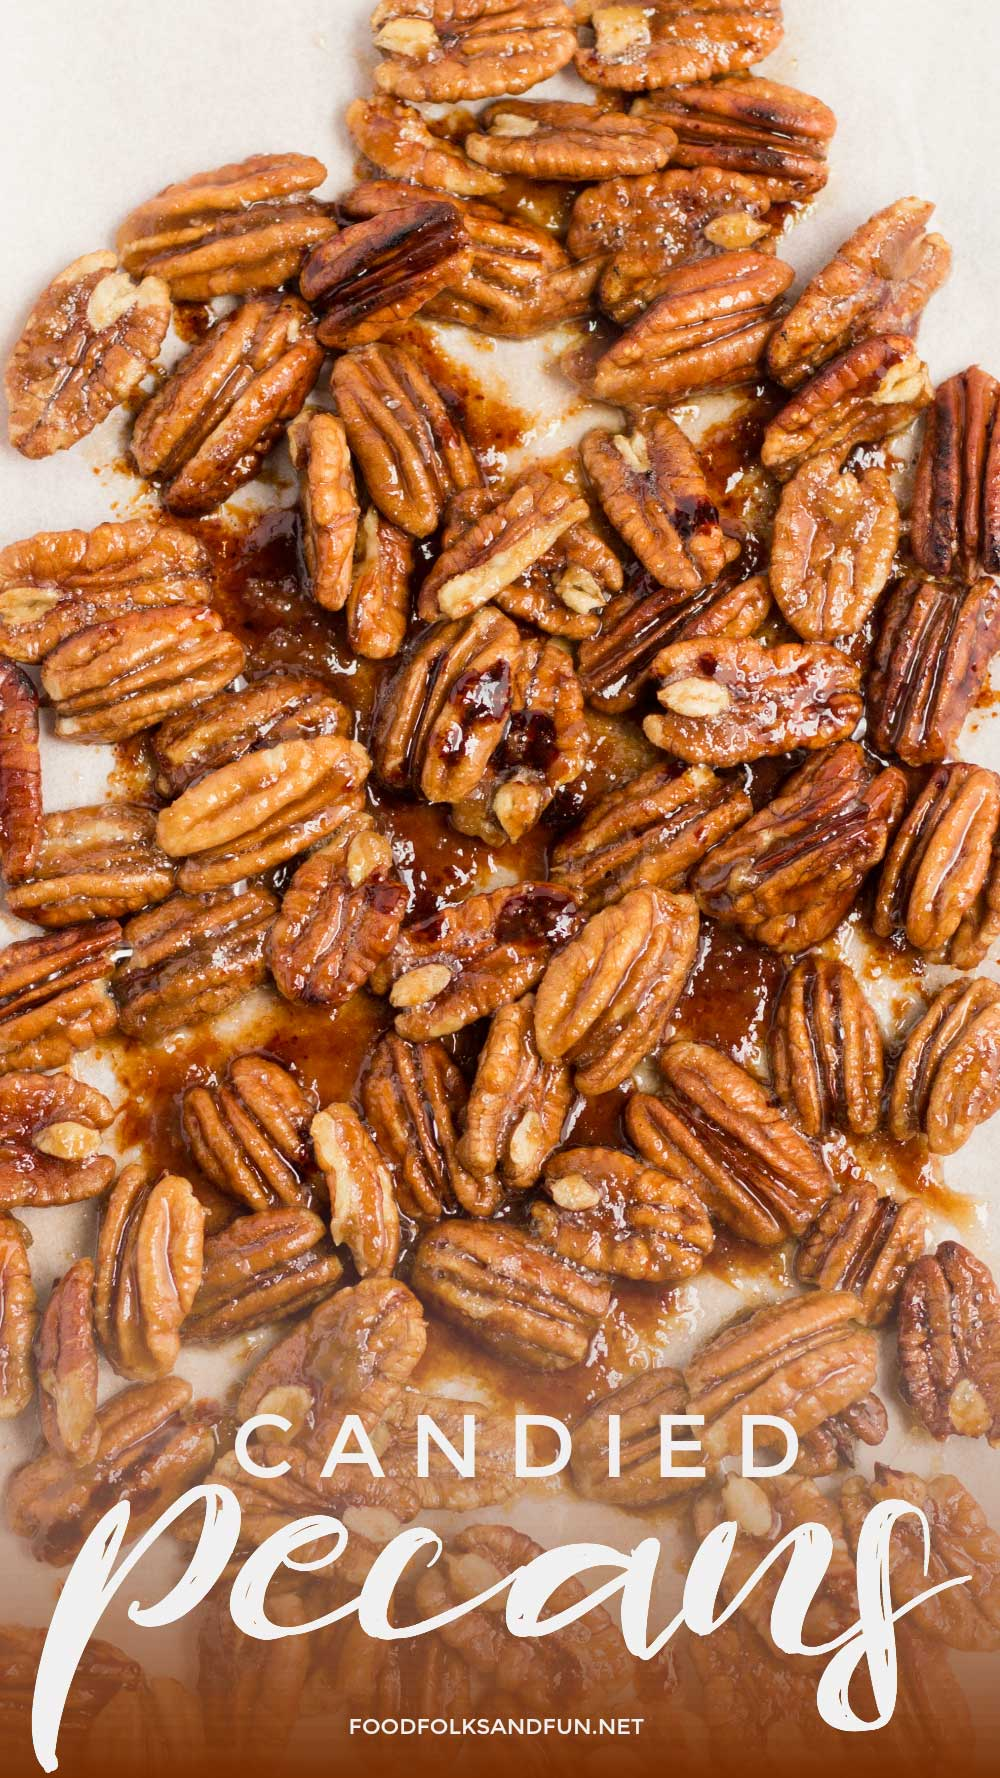 Easy, homemade Candied Pecans recipe.